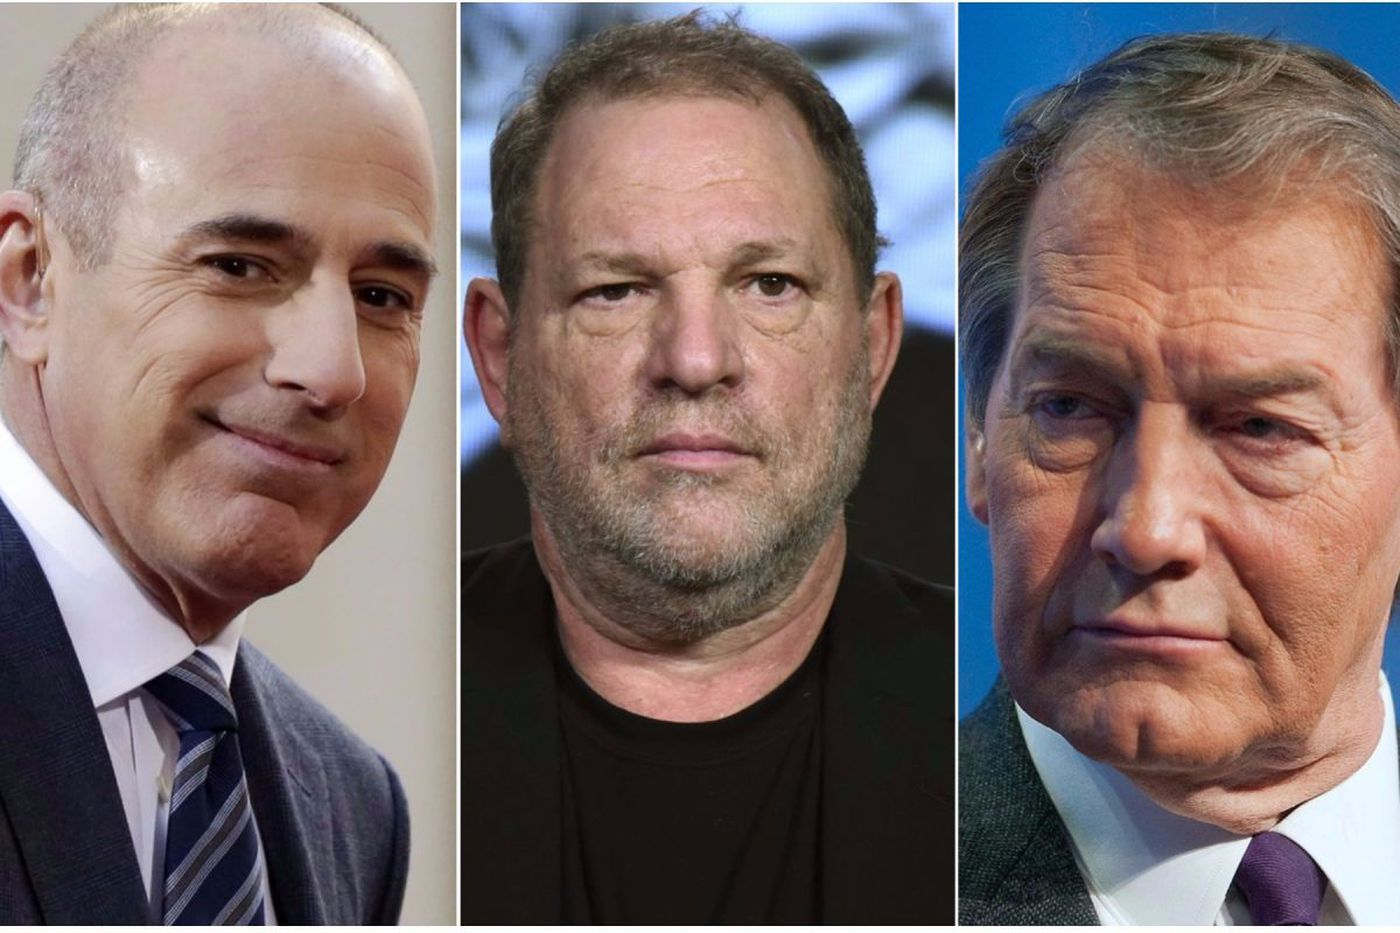 Some pointers for the men who stand accused | Lisa Scottoline